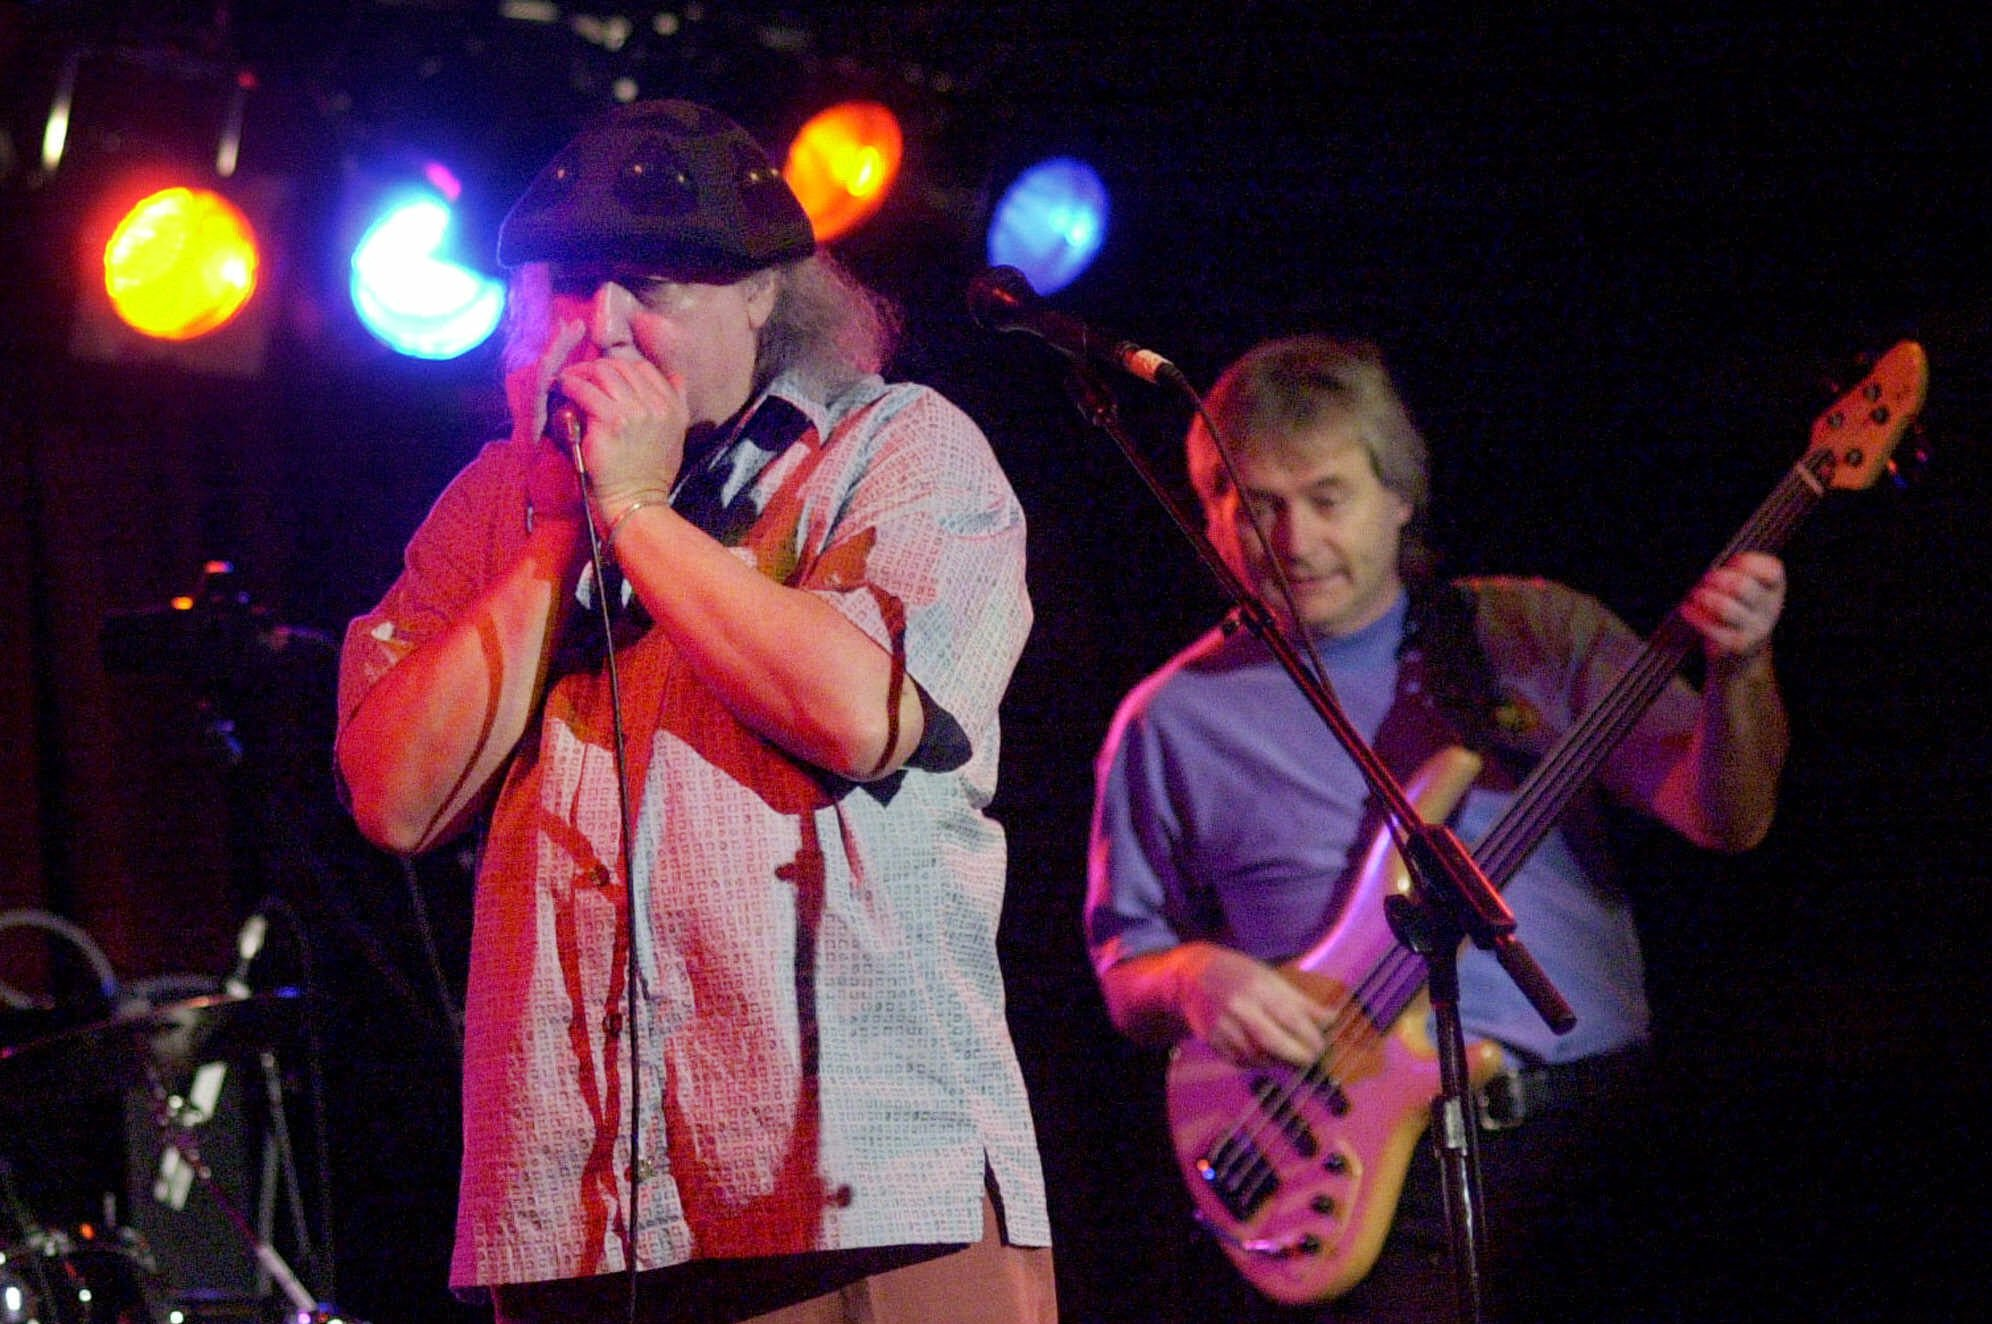 British rock and blues guitarist Peter Green, left, a founding member of Fleetwood Mac, performs with his own band, Peter Green's Splinter Group, at B.B. King Blues Club & Grill Saturday, April 7, 2001, in New York. Guitarist Peter Stroud is at right. (AP Photo/Mark Lennihan)